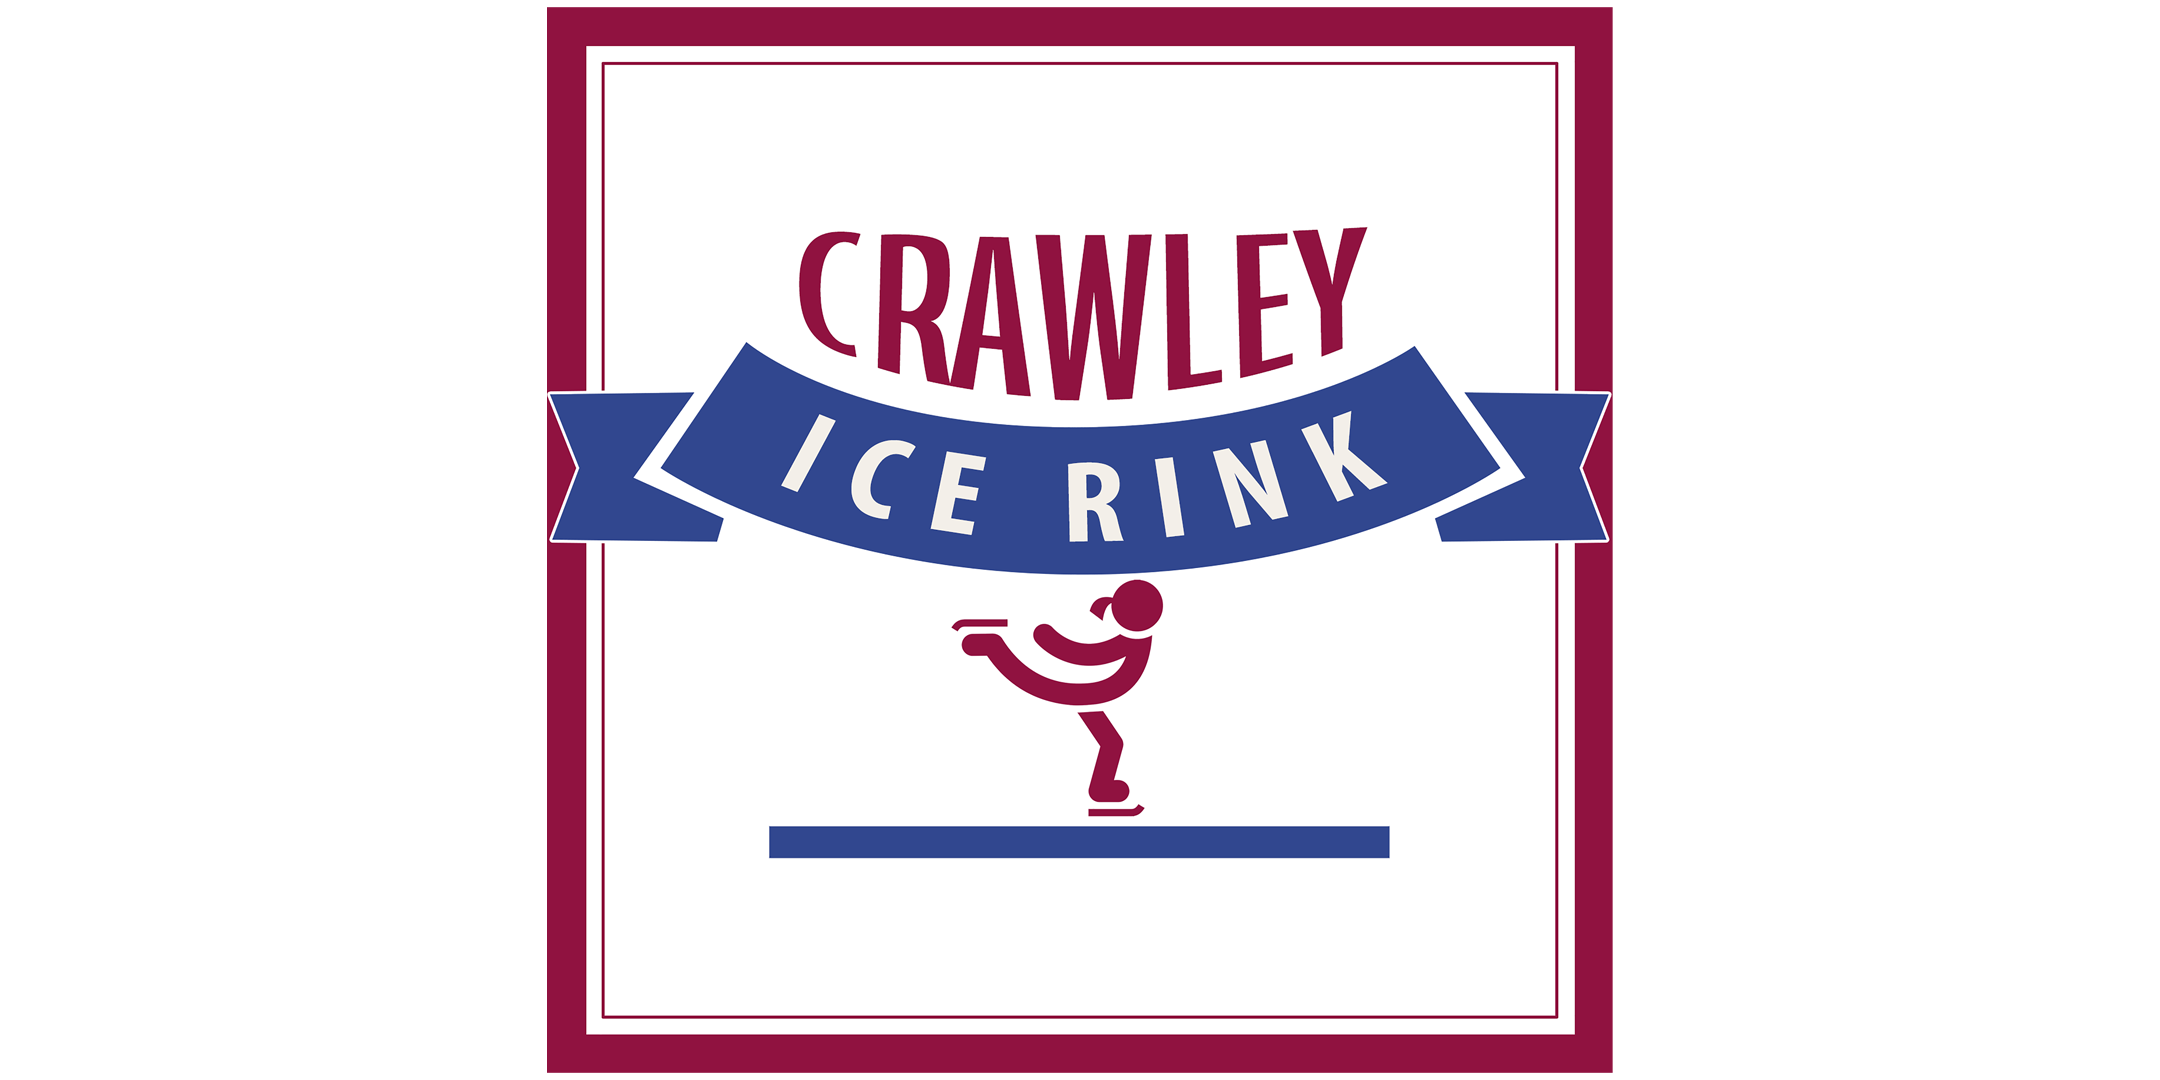 Crawley Ice Rink - 23rd December (Off Peak)